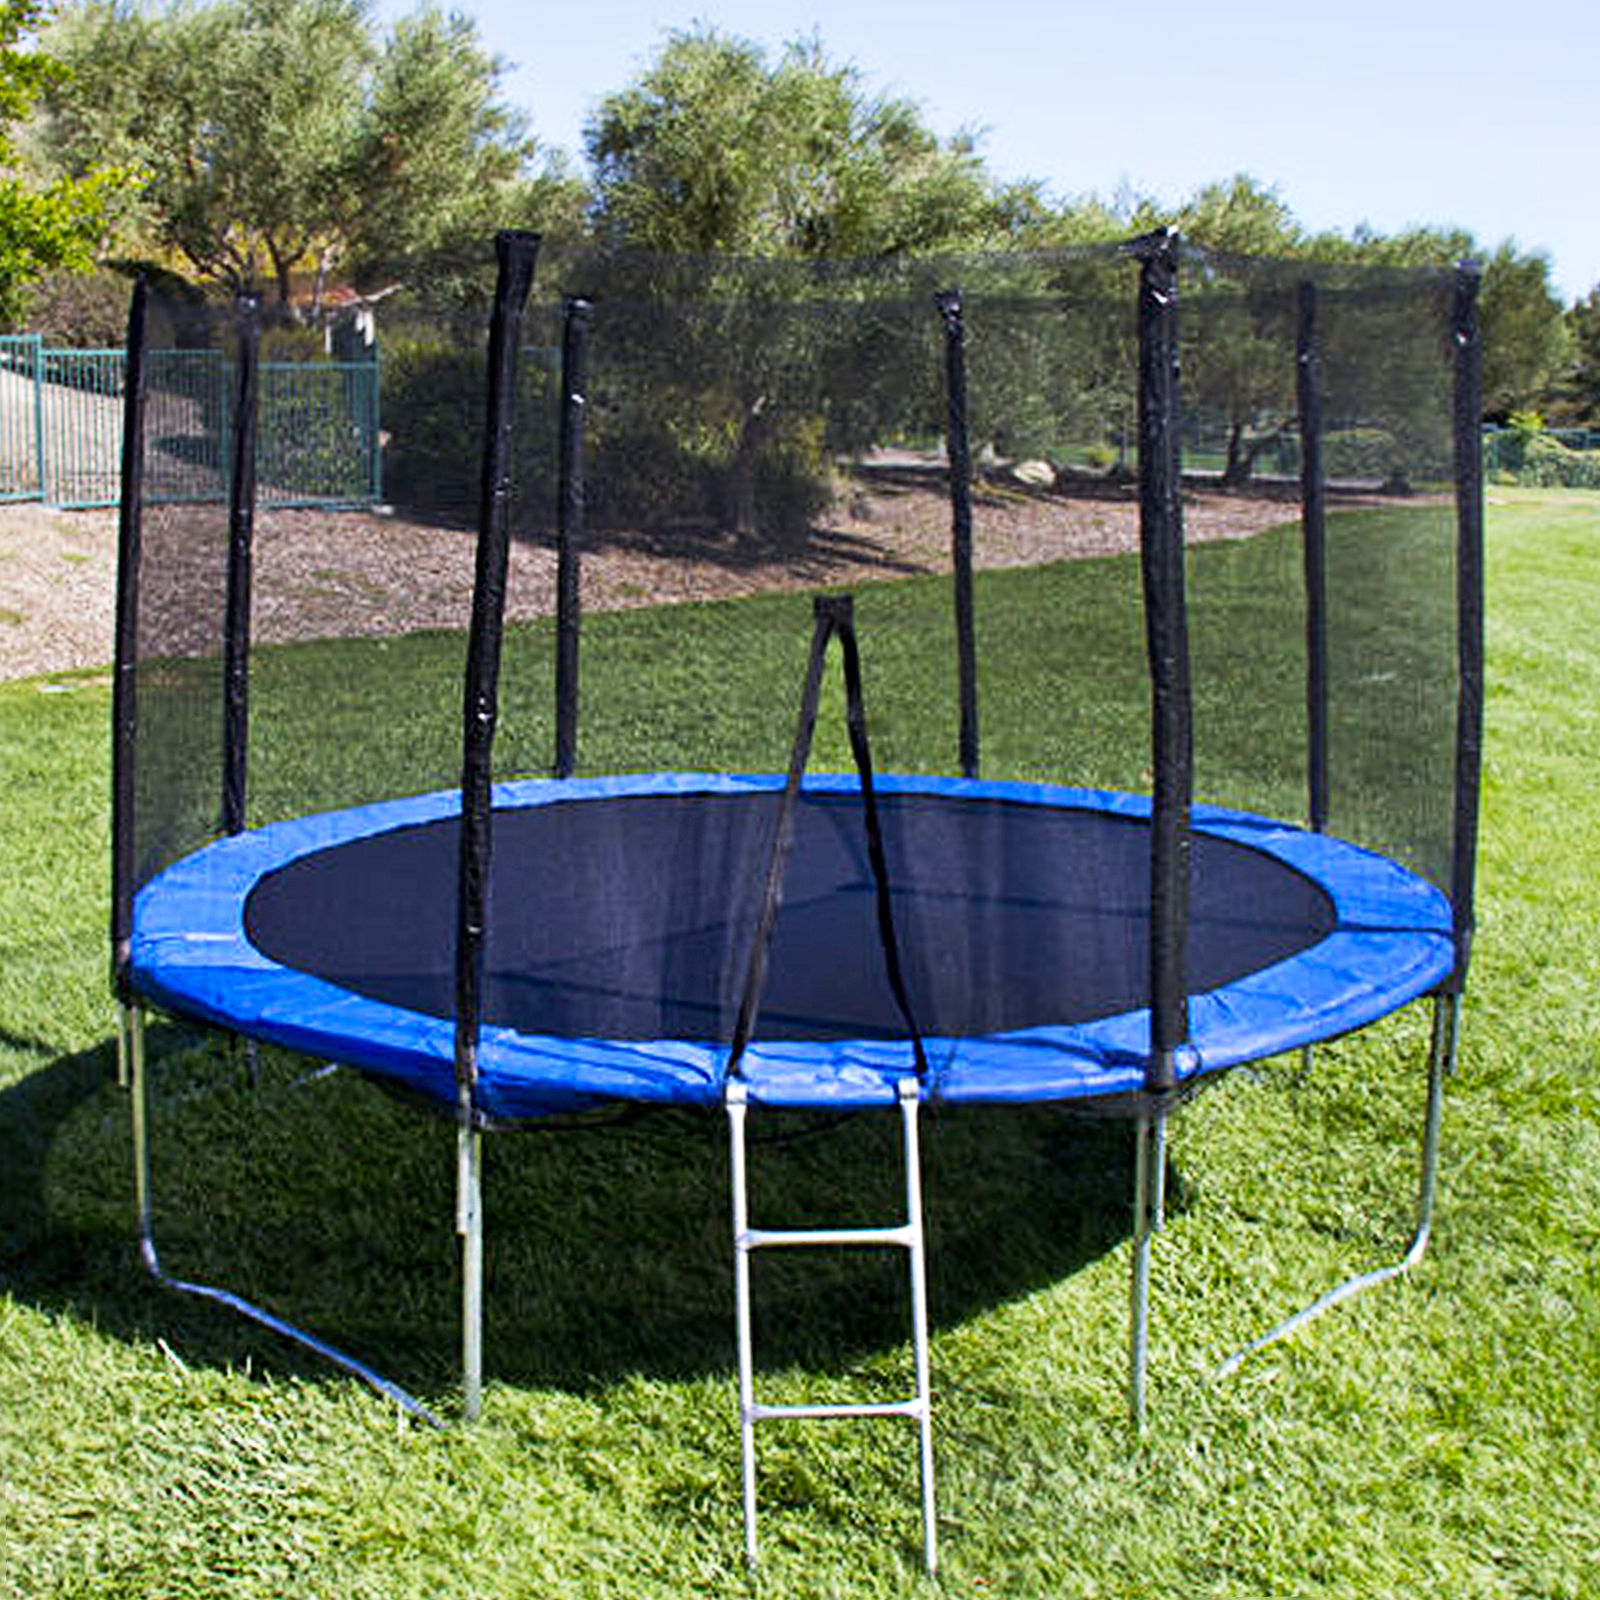 12 Foot Trampoline Mat And Springs: 12 Ft Trampoline With Enclosure And Net W/Spring Outdoor